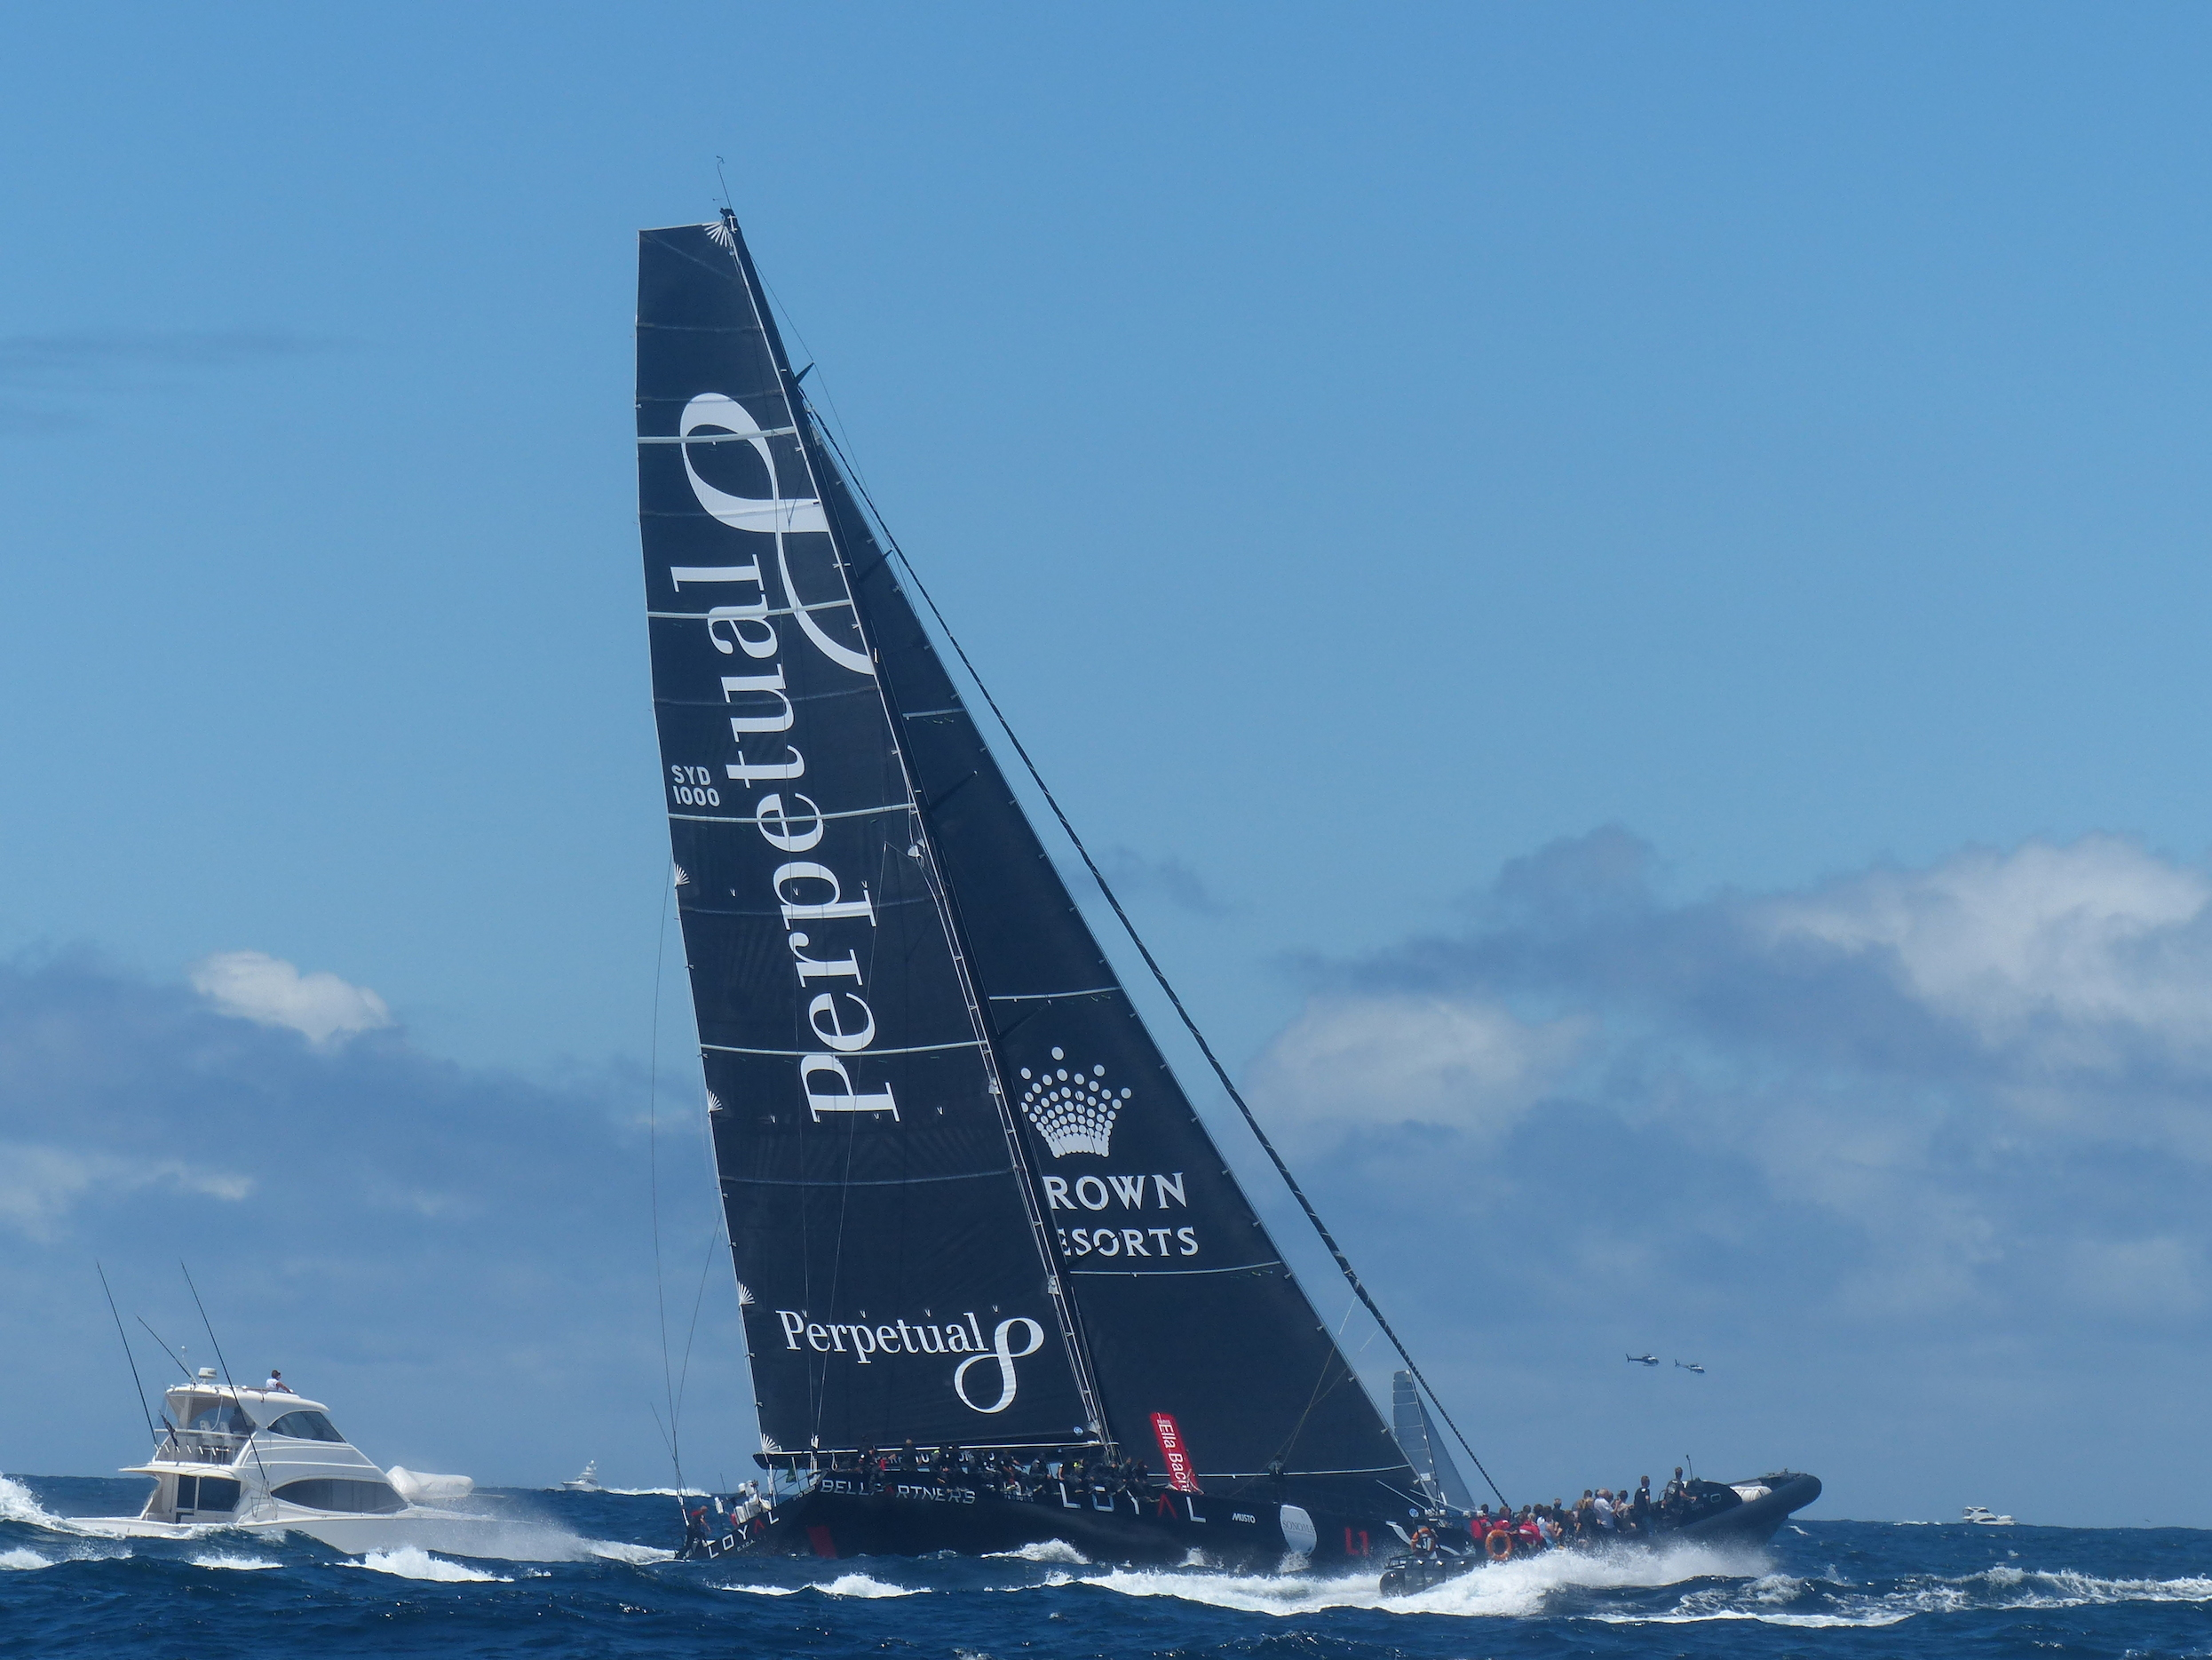 Boxing Day - Sydney to Hobart race experience - Departs Manly Wharf - SOLD OUT